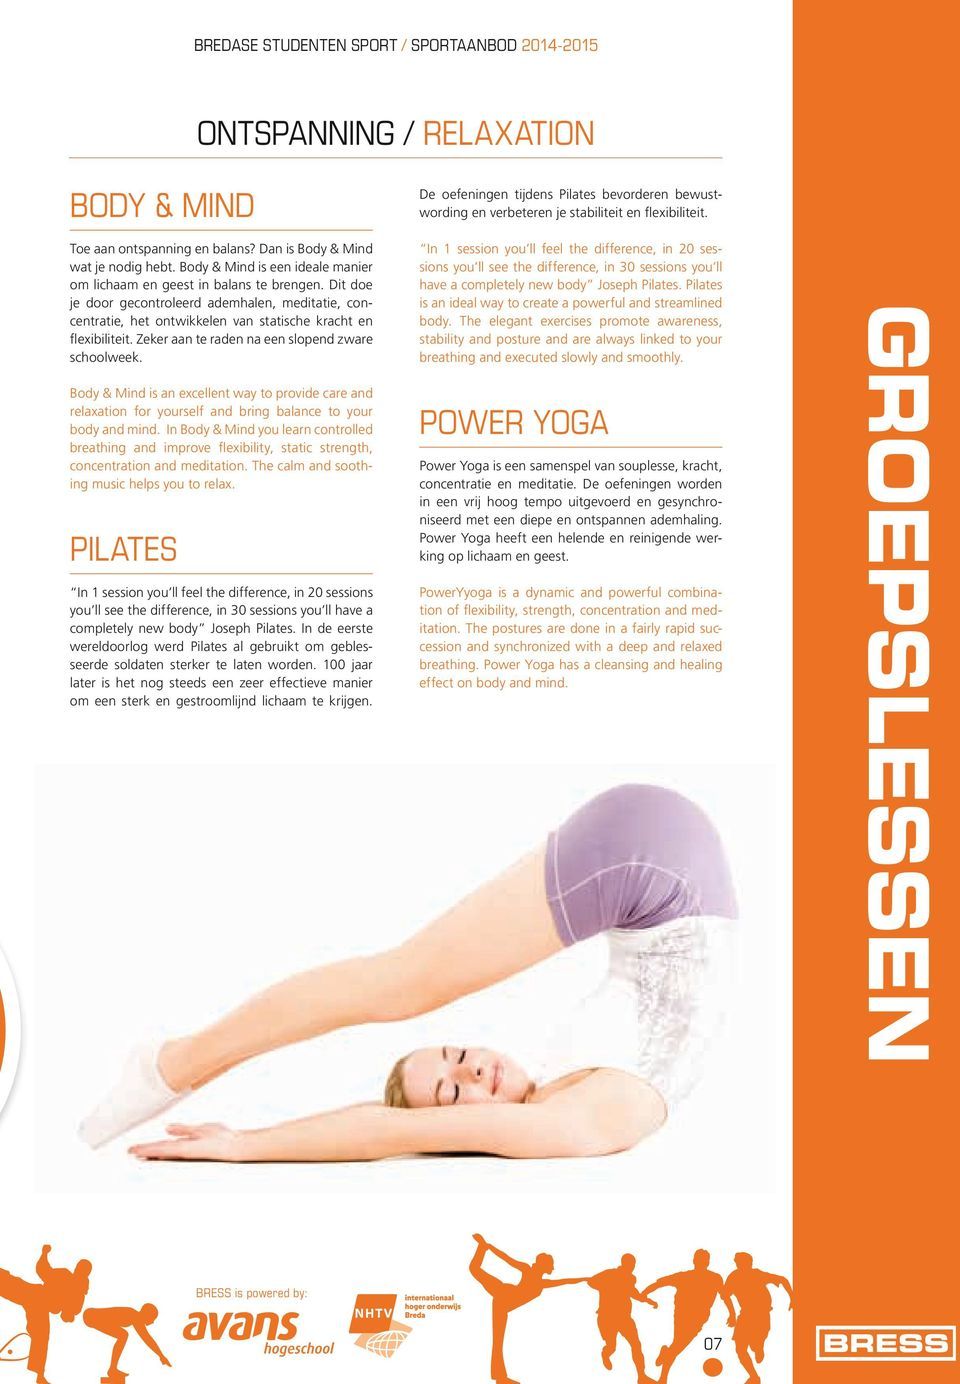 Zeker aan te raden na een slopend zware schoolweek. Body & Mind is an excellent way to provide care and relaxation for yourself and bring balance to your body and mind.